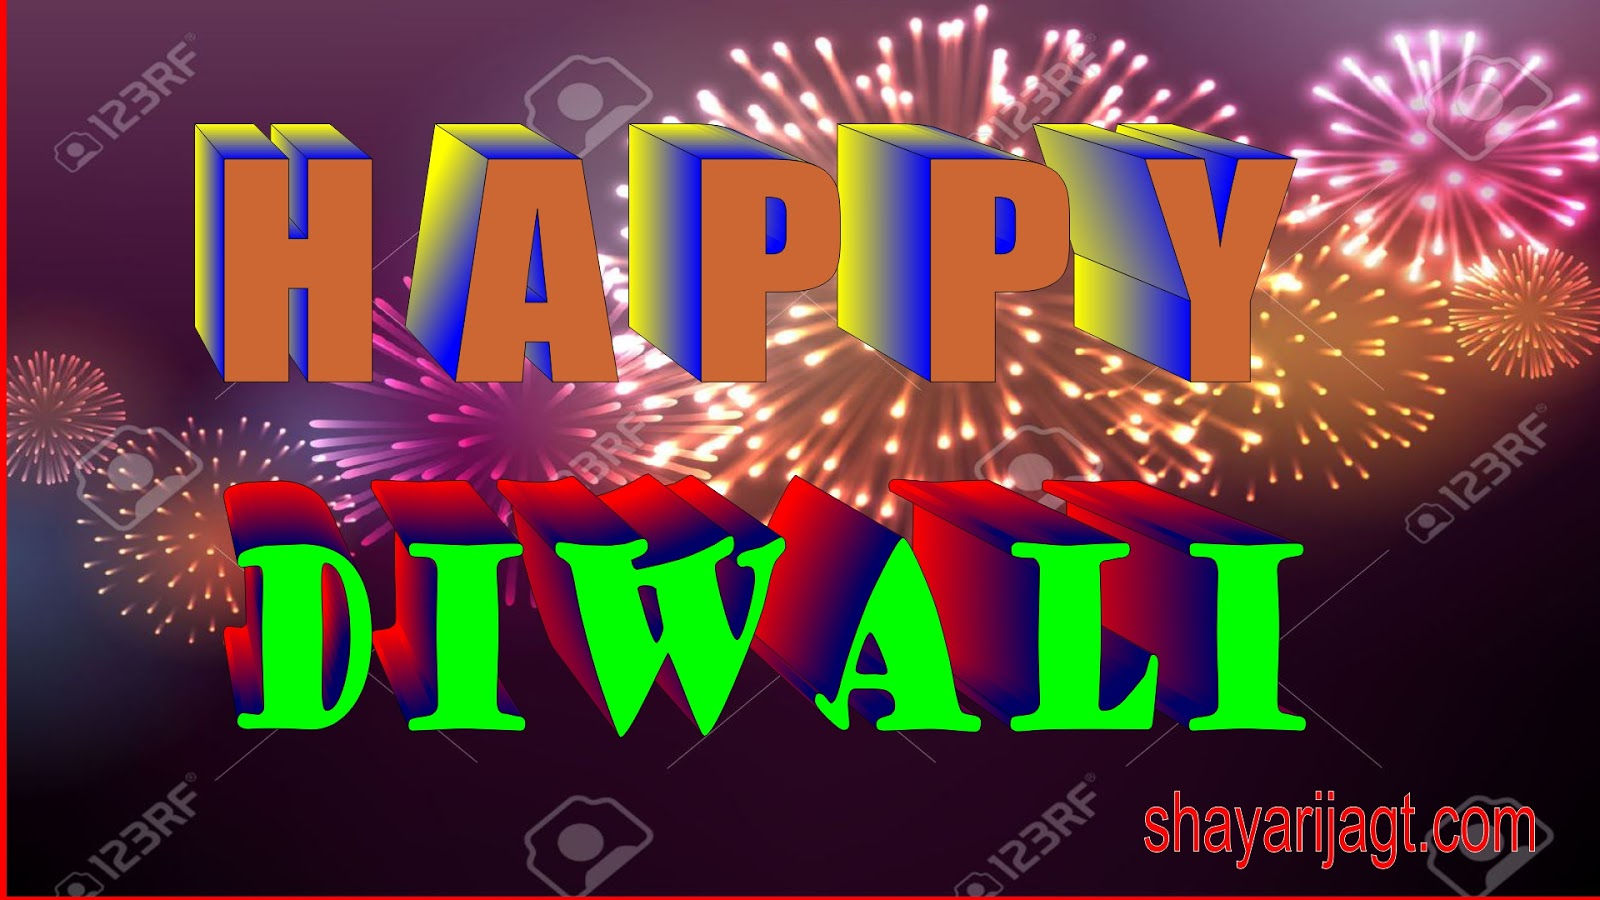 Happy diwali 2018 wishes greetings status quotesshayari and sms happy diwali shayari 2018 wishes sms greetings quotes m4hsunfo